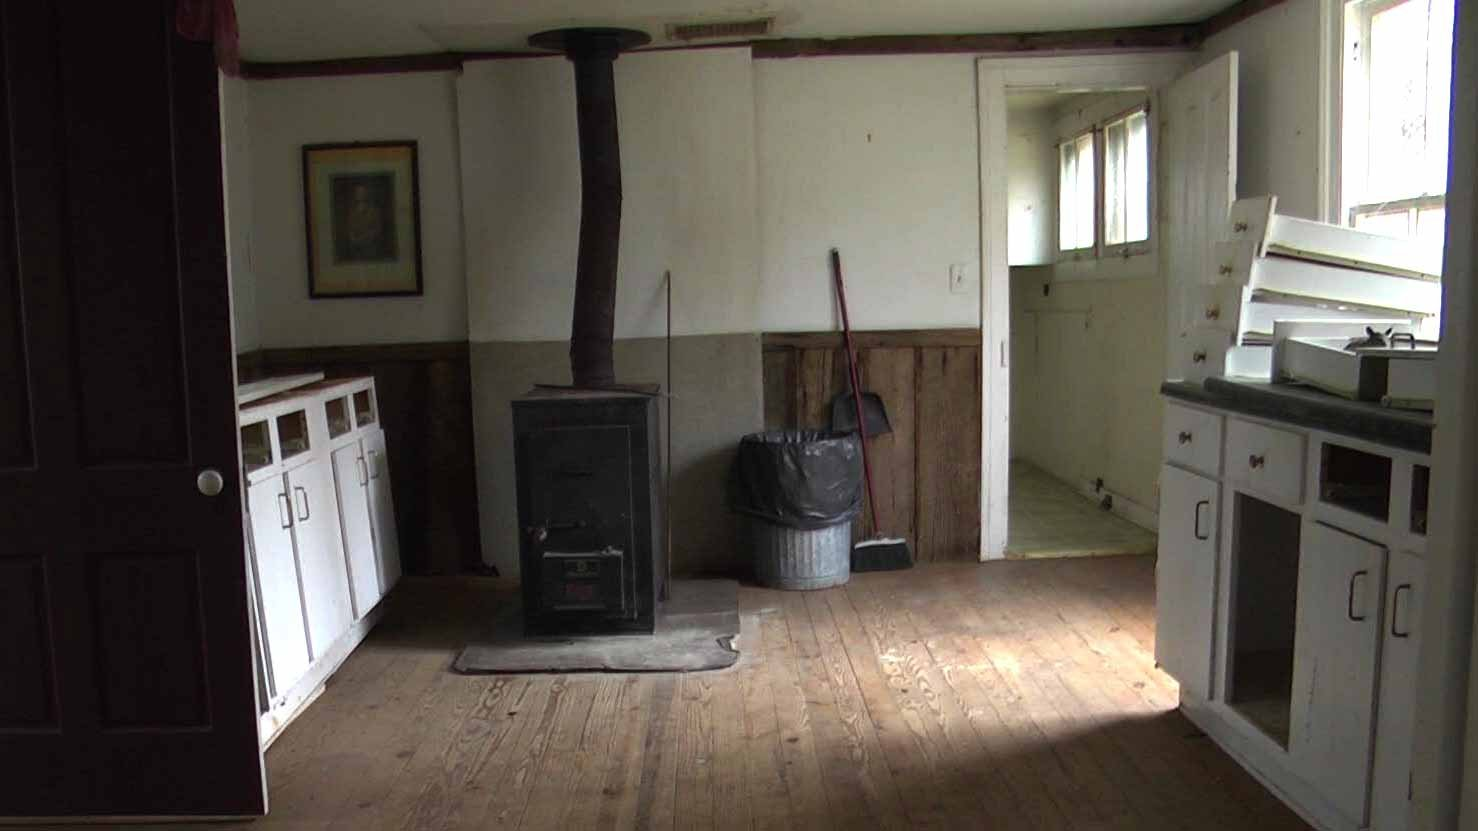 Several groups are looking to preserve the home.